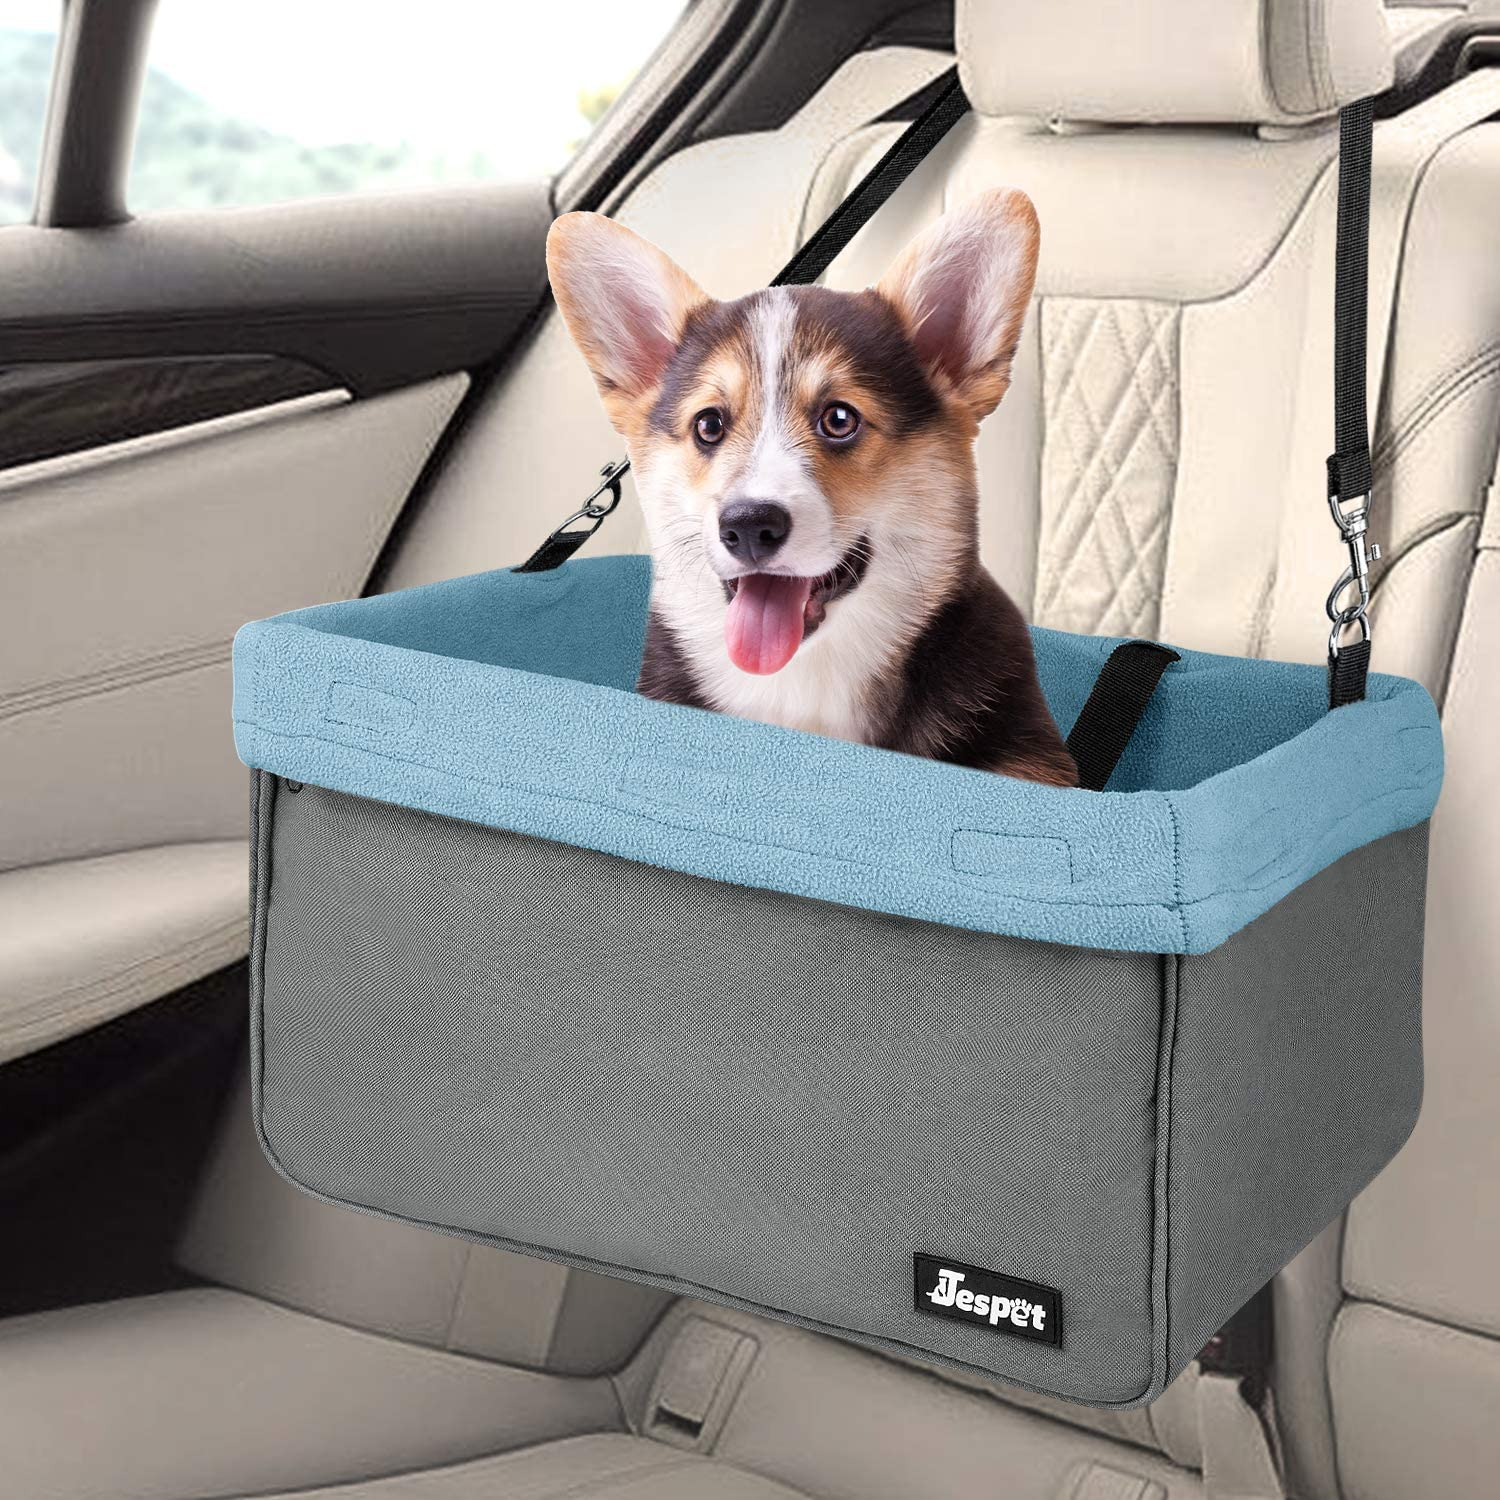 JESPET Dog Booster Seats for Max 66% OFF Car Finally resale start Portable Cars Travel Seat